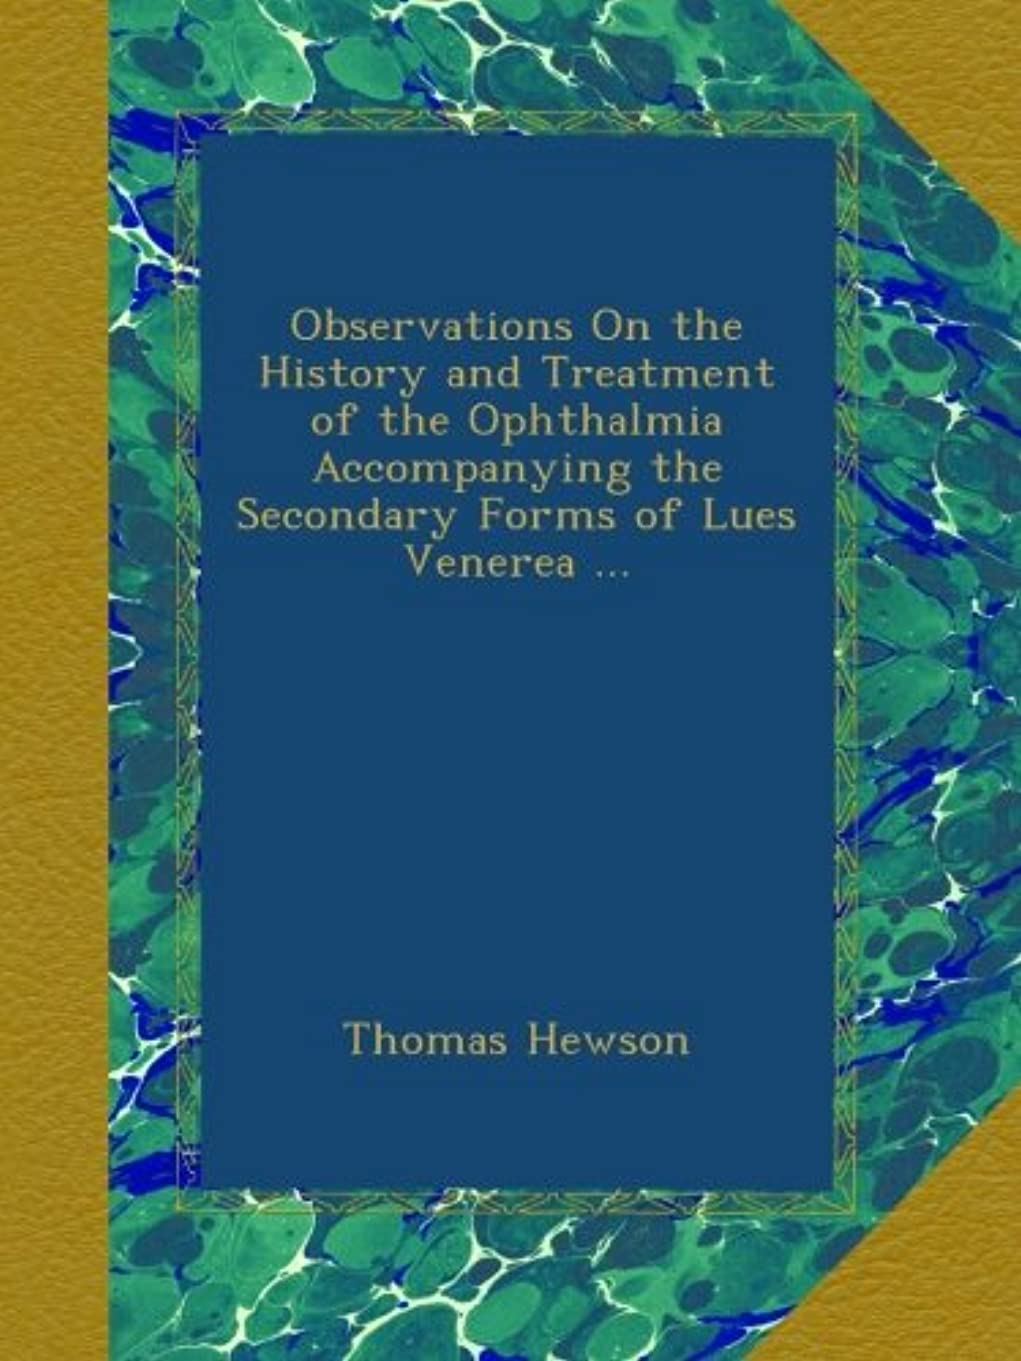 生き残り閲覧する調整可能Observations On the History and Treatment of the Ophthalmia Accompanying the Secondary Forms of Lues Venerea ...